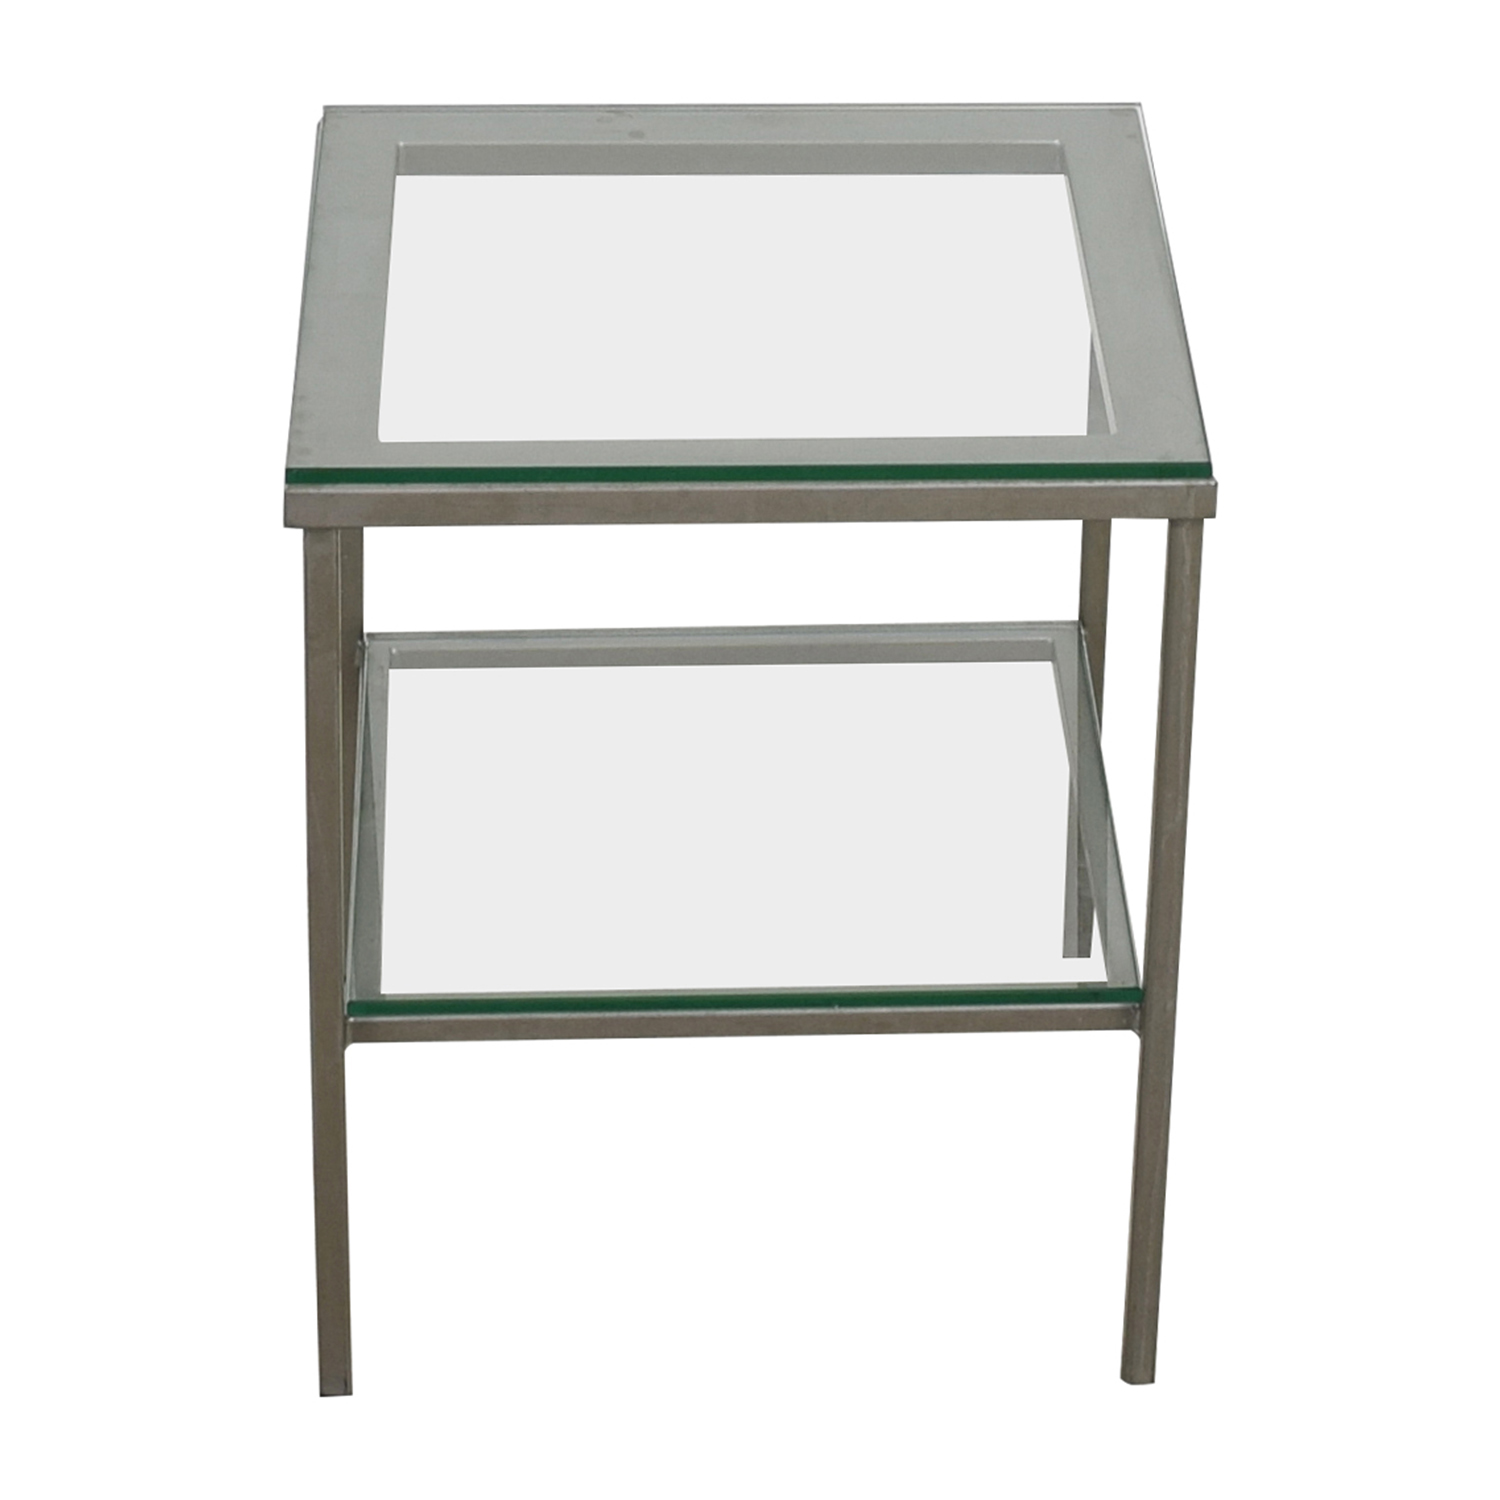 buy Crate & Barrel Glass Chrome Side Table Crate & Barrel Tables